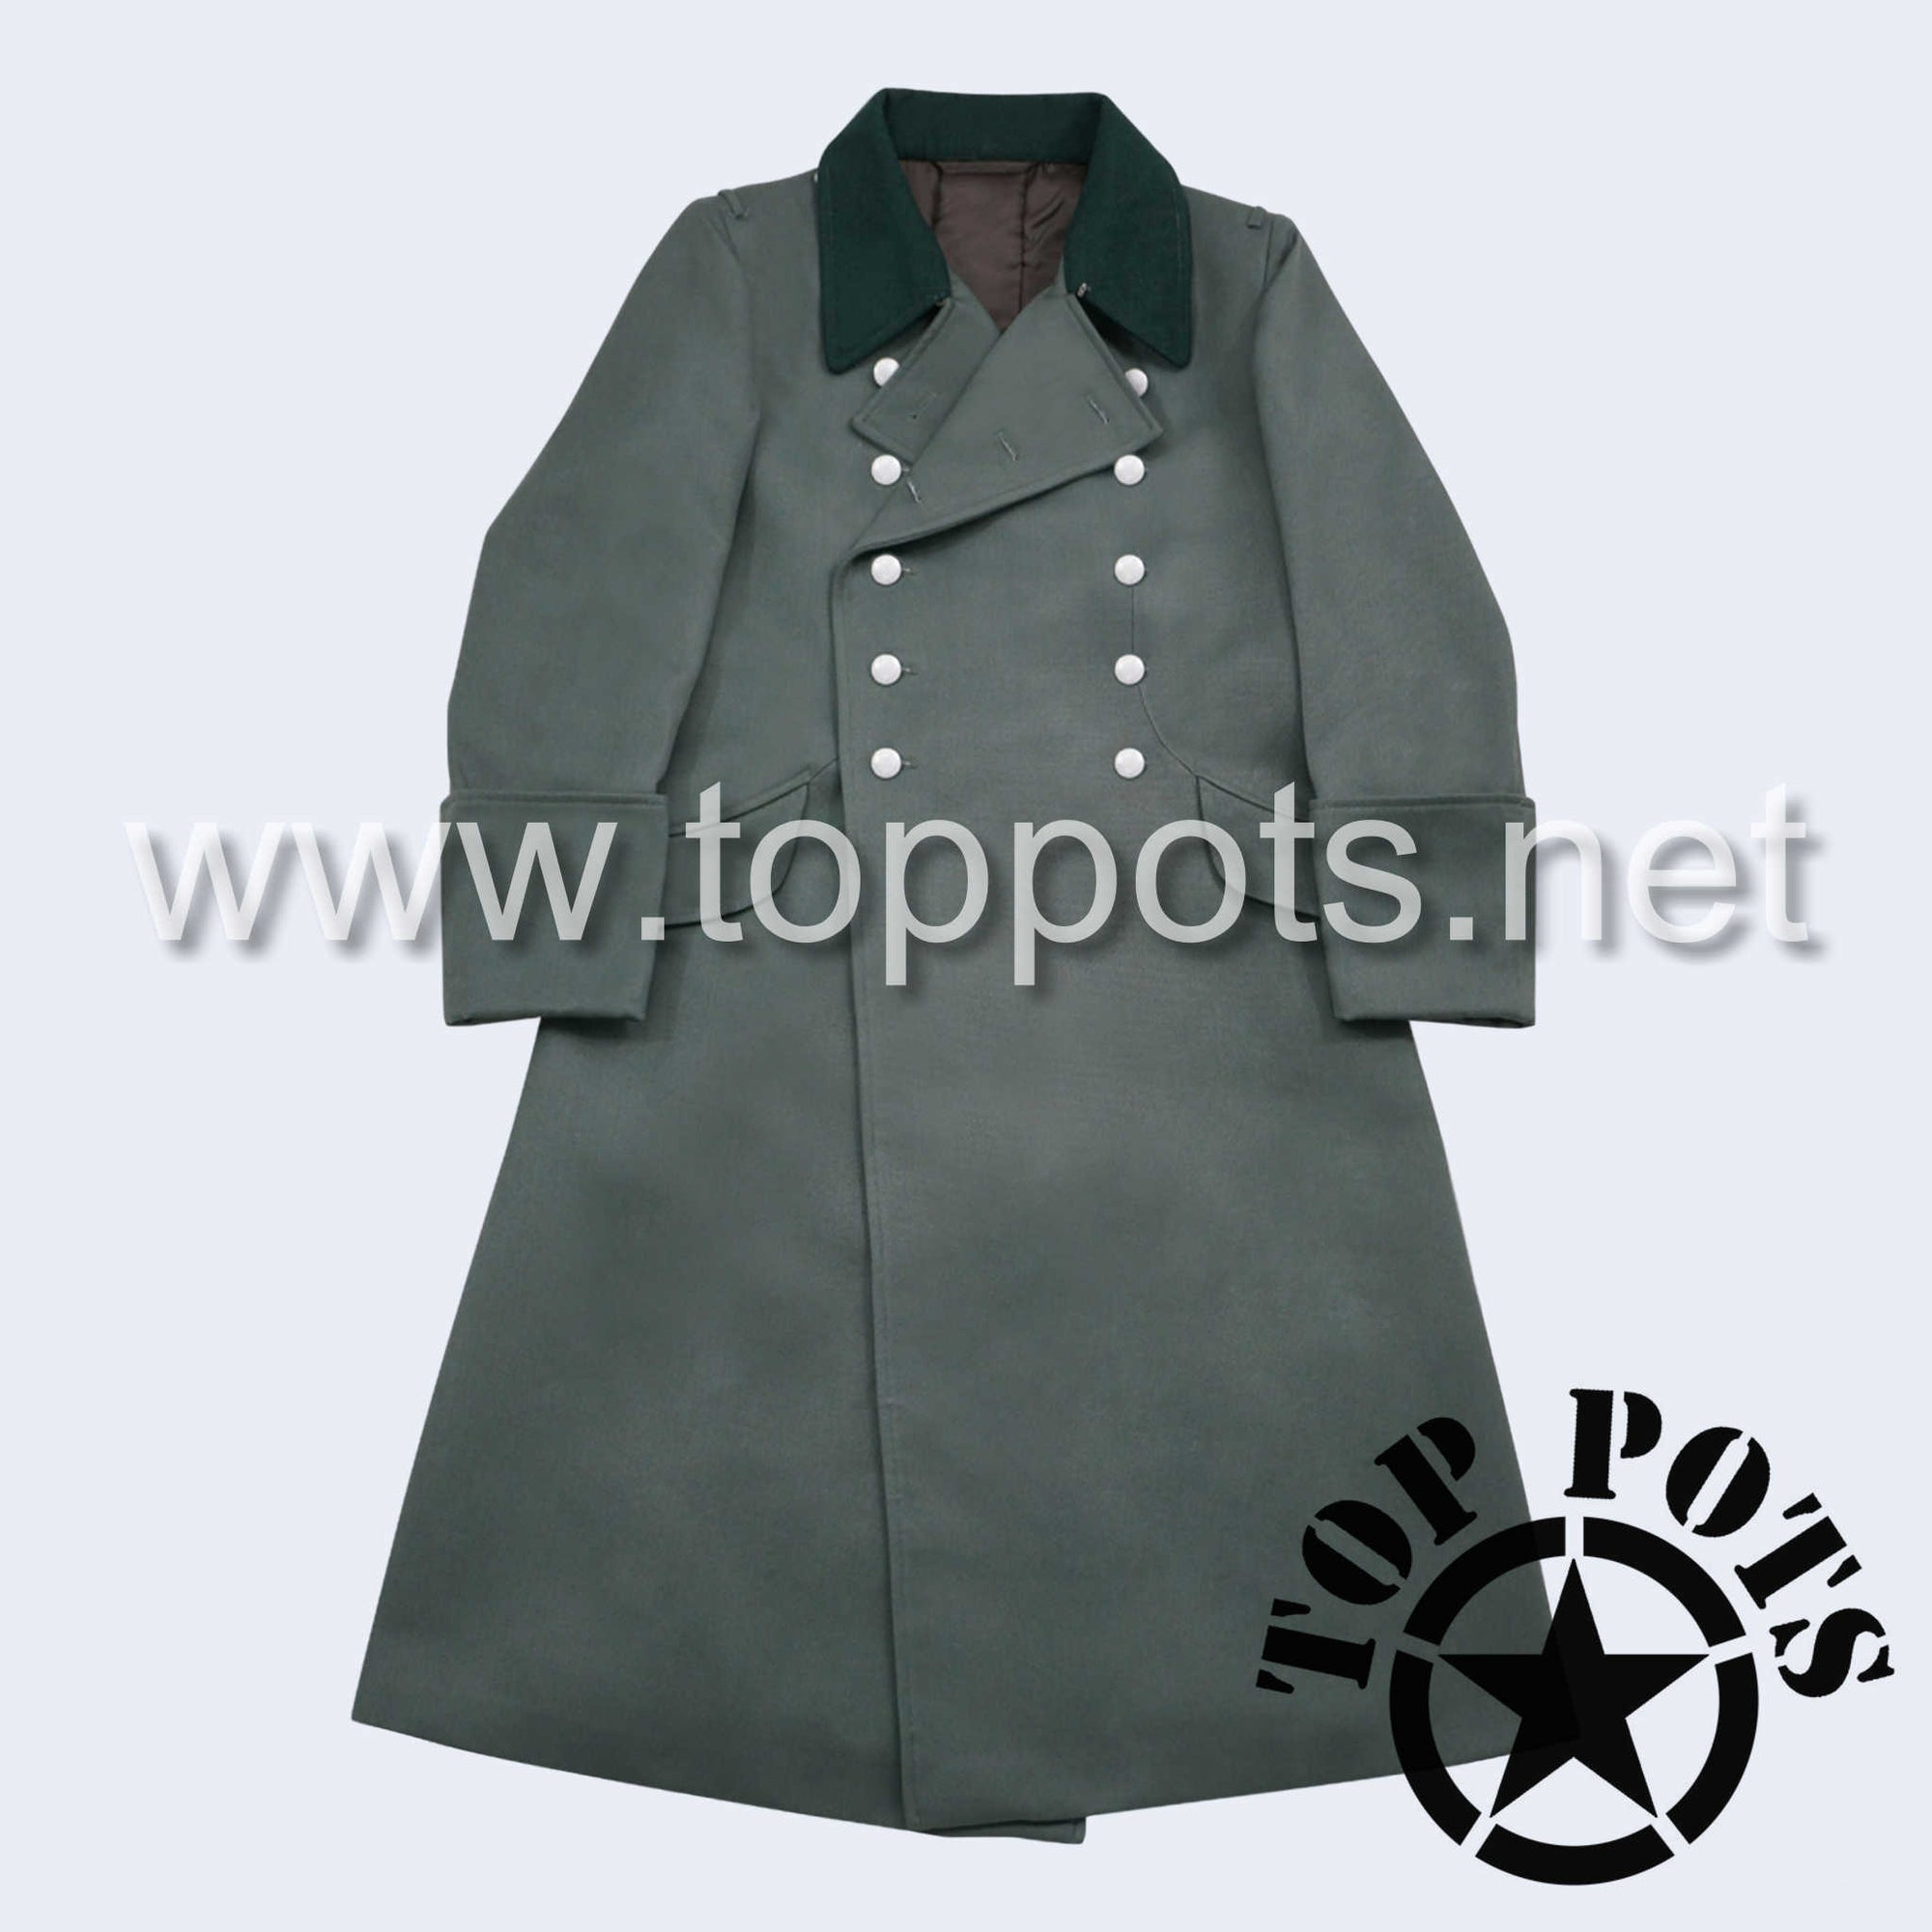 WWII German Army M1936 Waffen SS Uniform Overcoat Greatcoat Winter Jacket Field Grey Gabardine - Officer